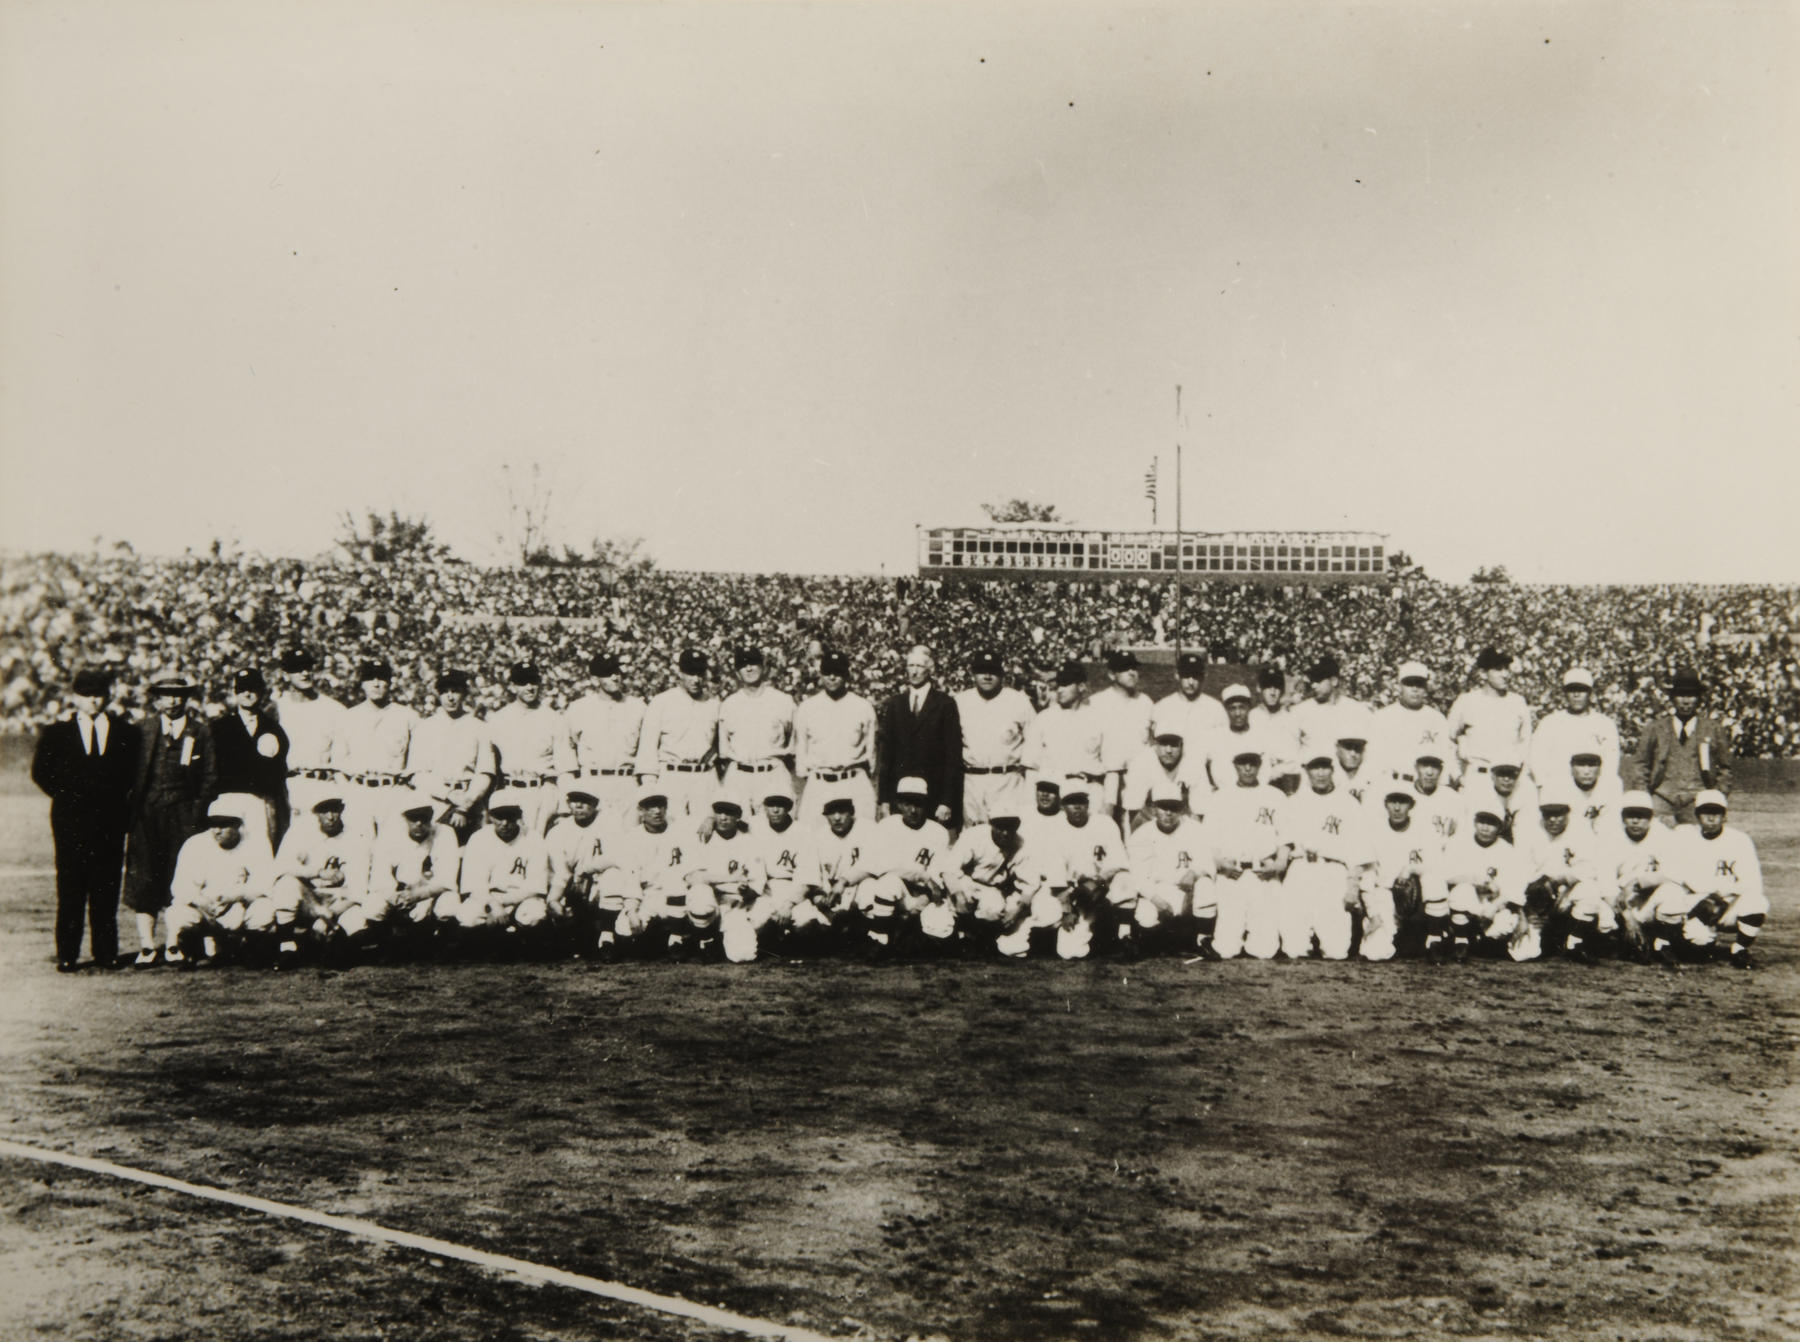 The All American and All Nippon teams pose on the field at Meiji Jingu Stadium in Tokyo before the first game of the tour. – B-277-51-21 (National Baseball Hall of Fame Library)